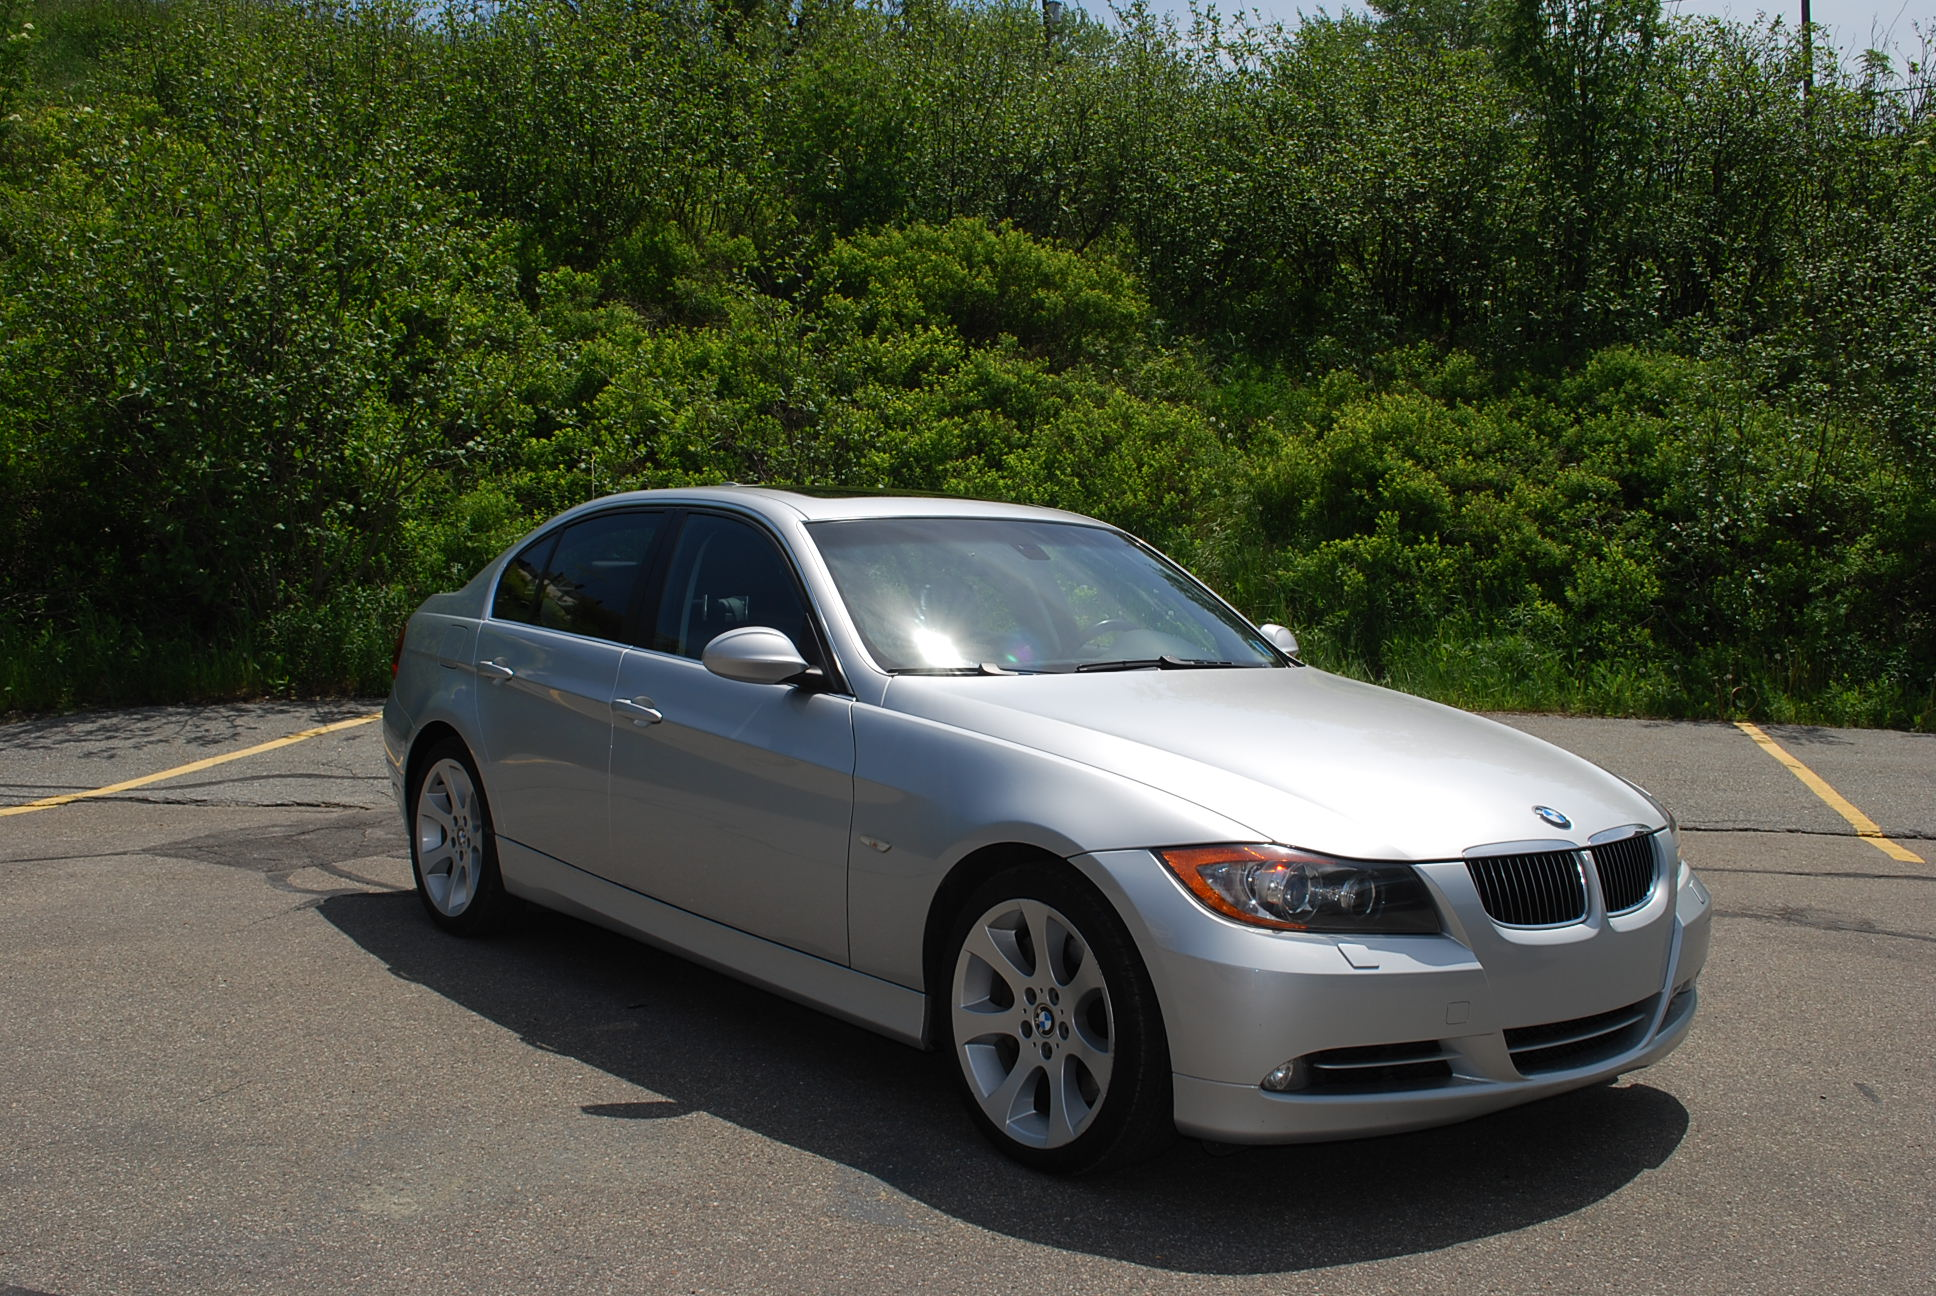 Used 2008 Bmw 335i X Drive For Sale In Saint John Nb